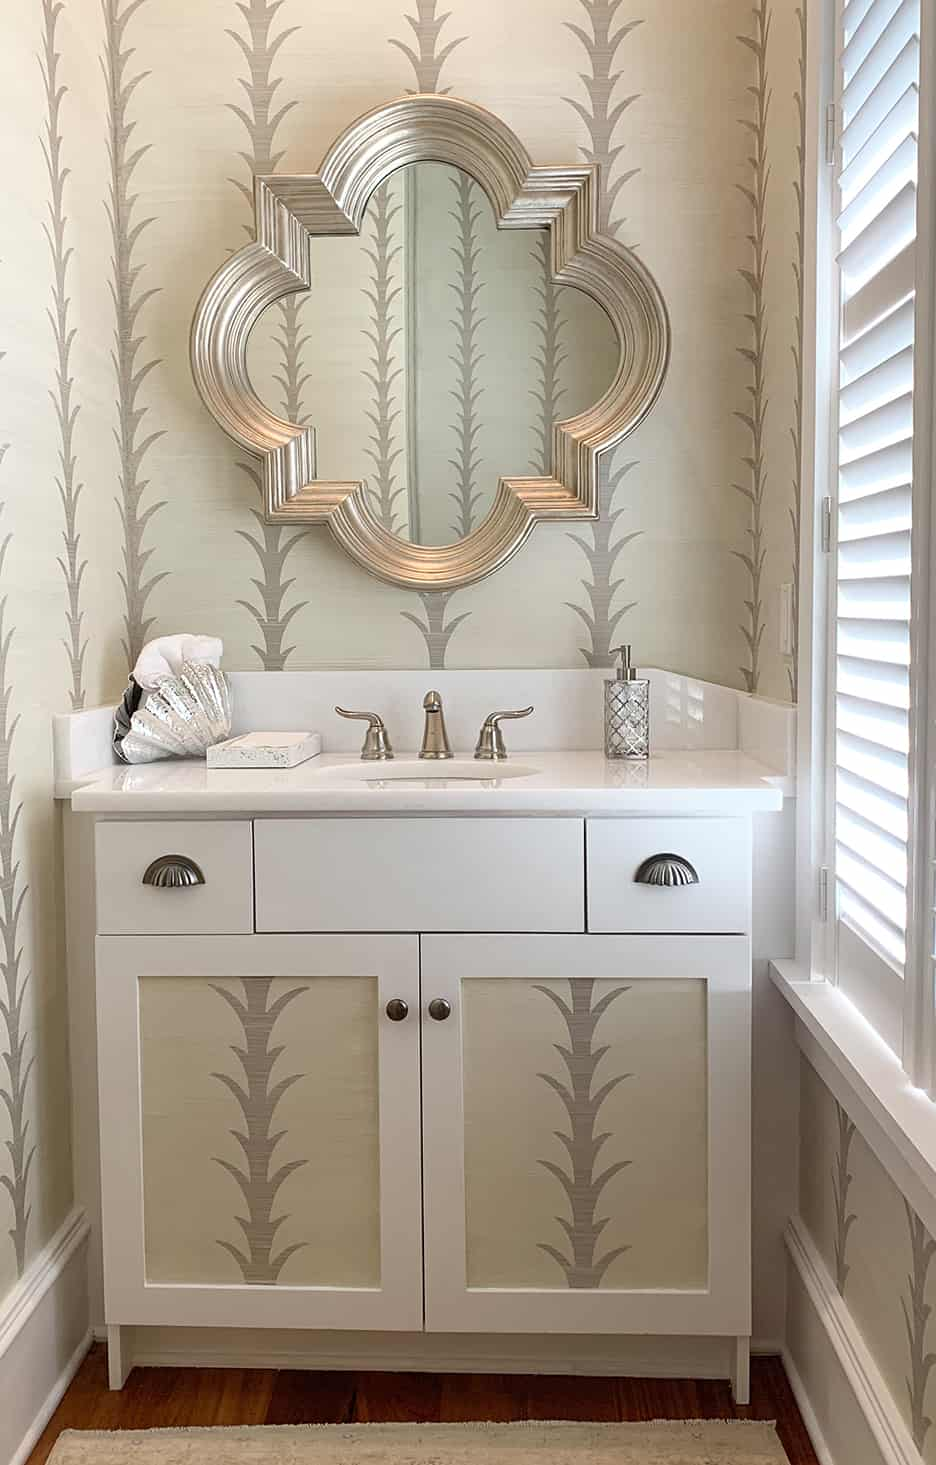 Palm Leaf Wall Finish in a bathroom with metallic linen glaze. Design also painted on vanity.